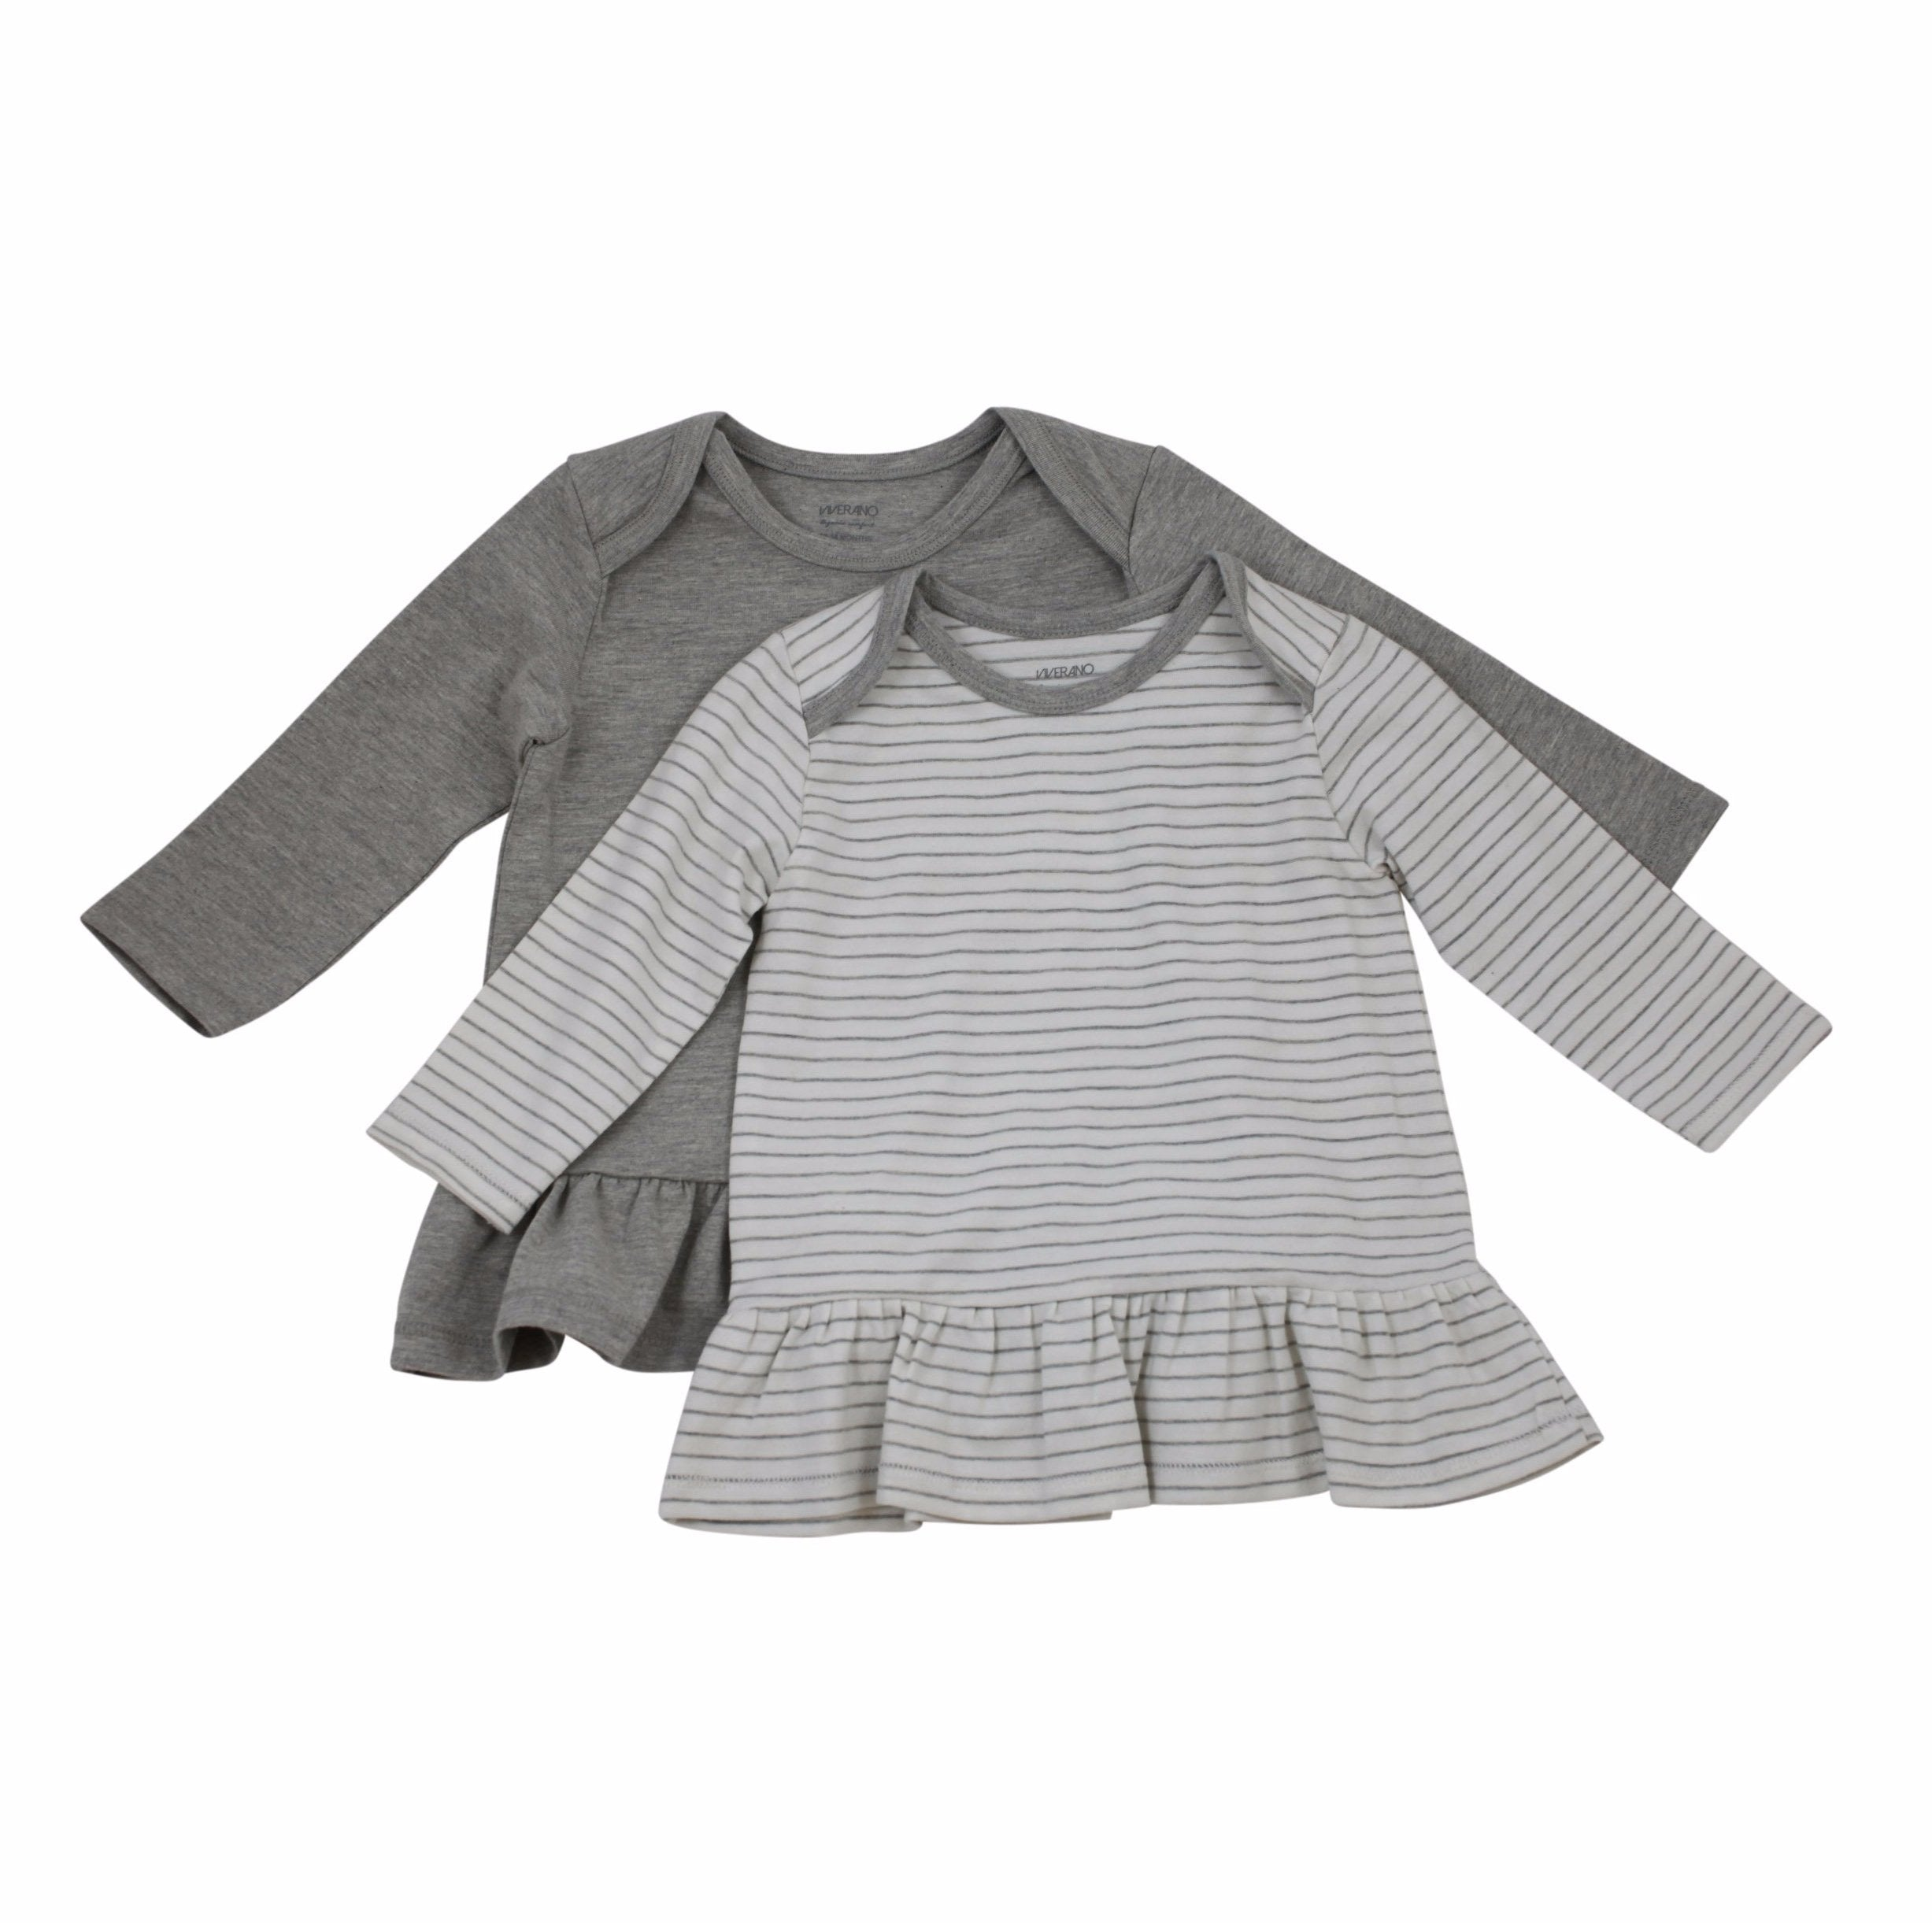 Jersey Dress Set -Grey and Grey Stripes 1